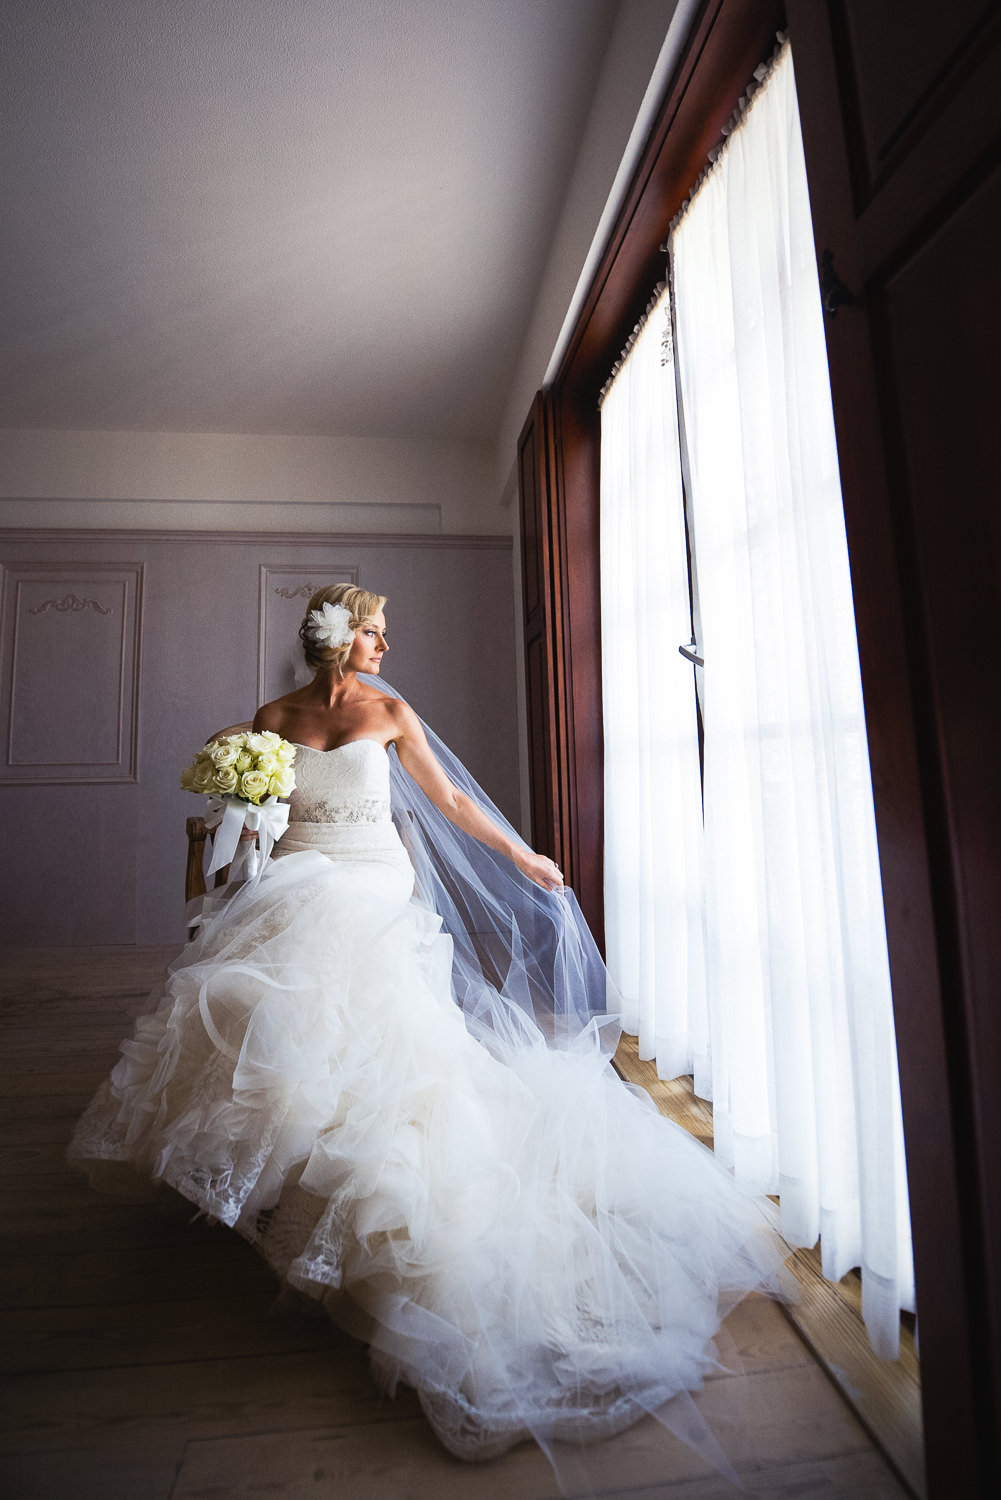 Turkey Wedding - Bride with her dress and flowers